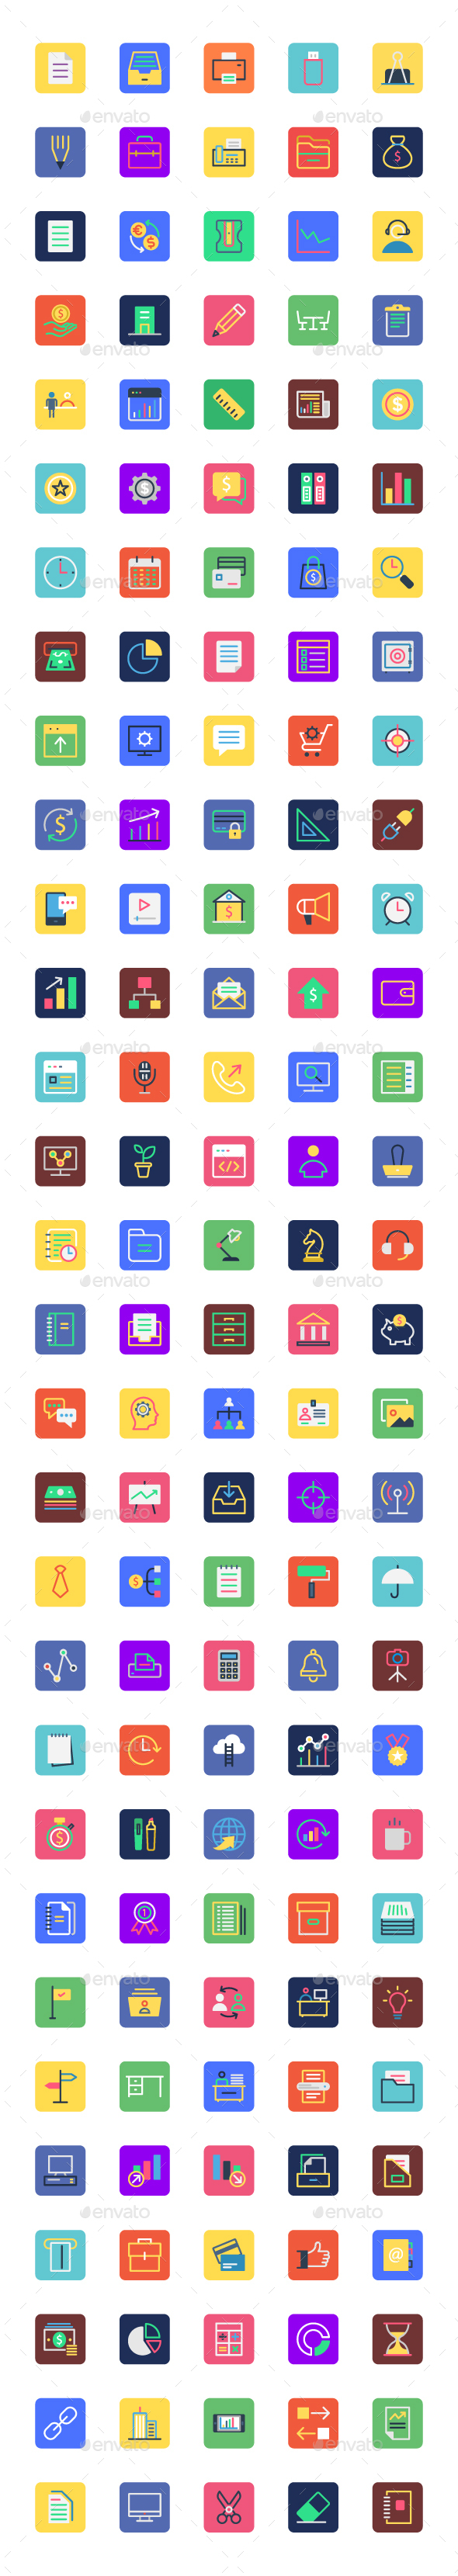 Business, Office and Marketing Icons - Icons